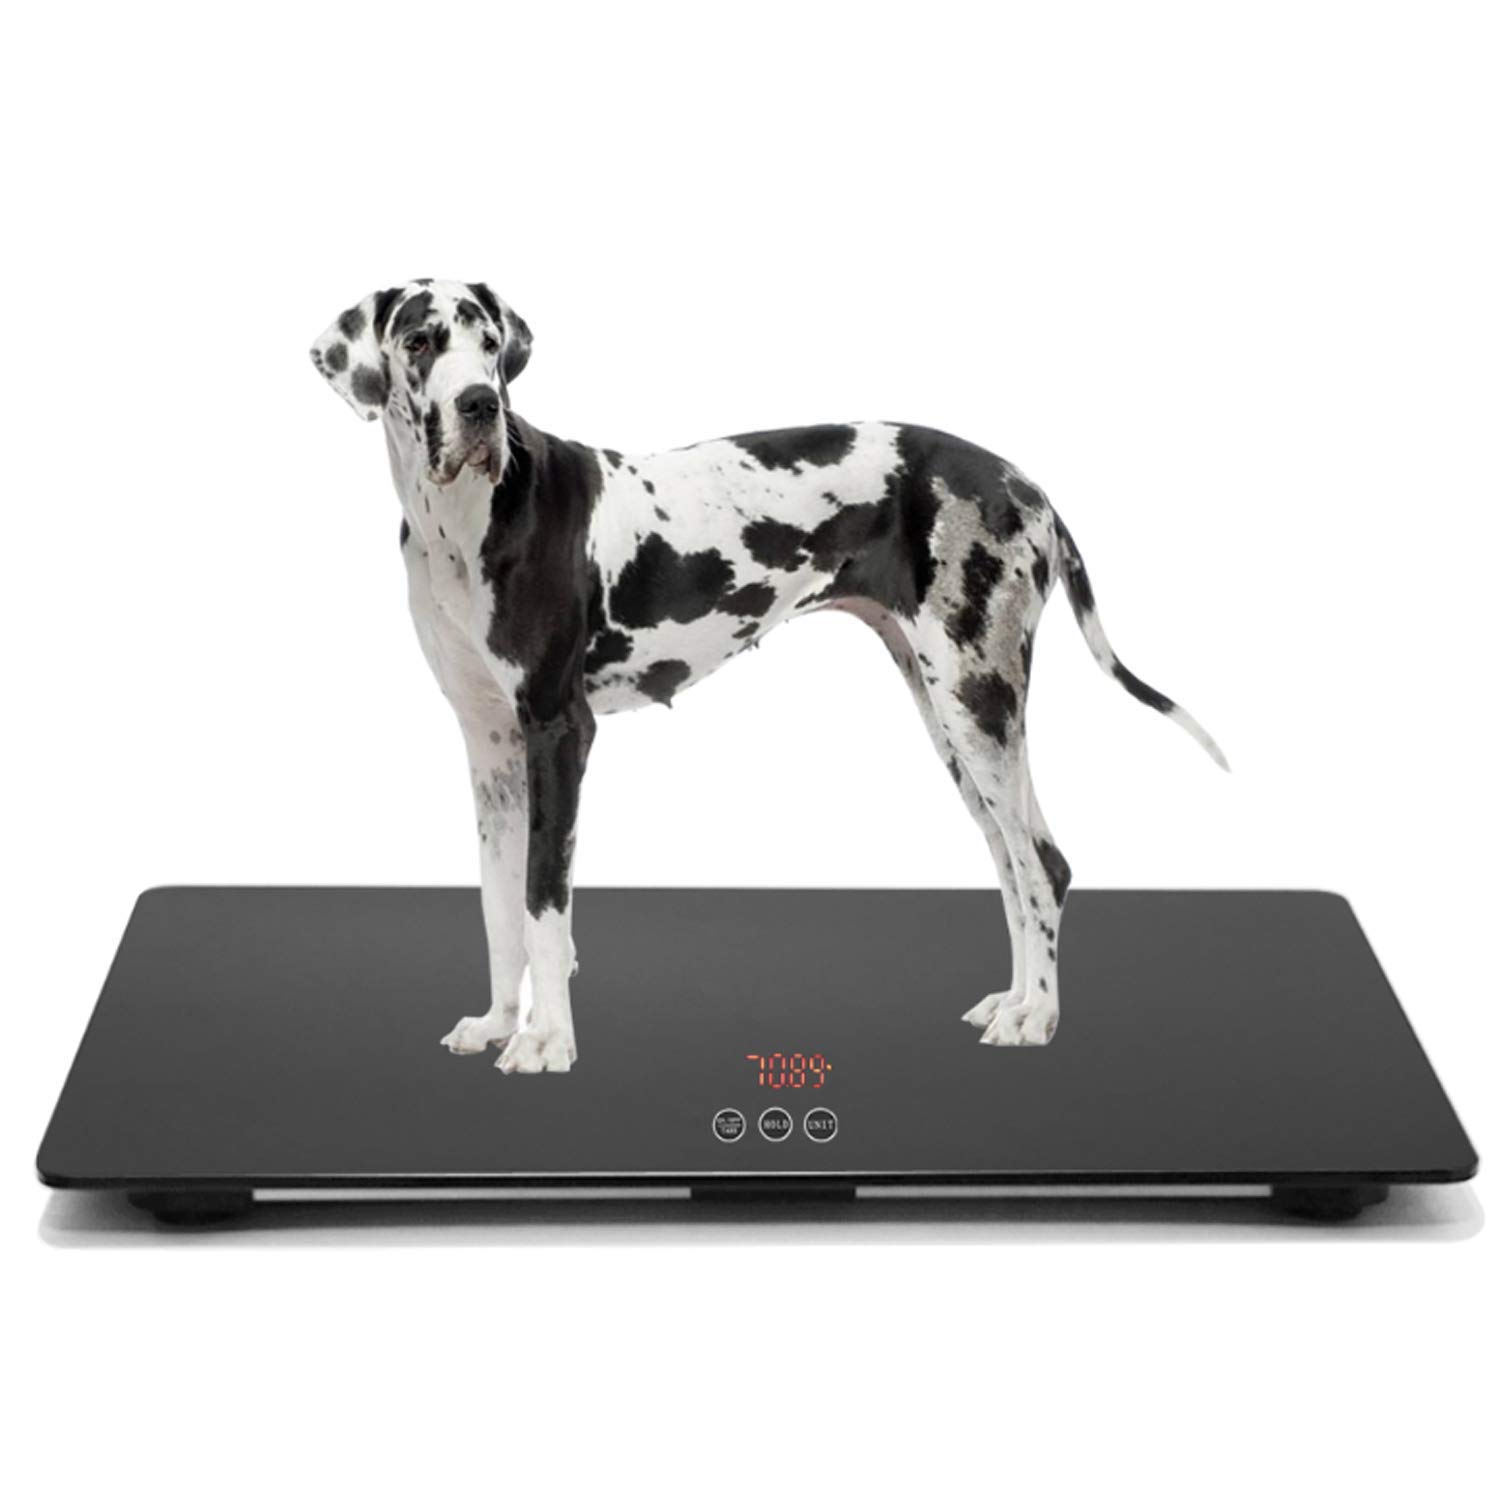 JAWELLT Large Digital Scale for Large Dogs Veterinarians Capacity is 100 kg (±10 g), Touch Button, 90 (Long) x 60 (Width) cm